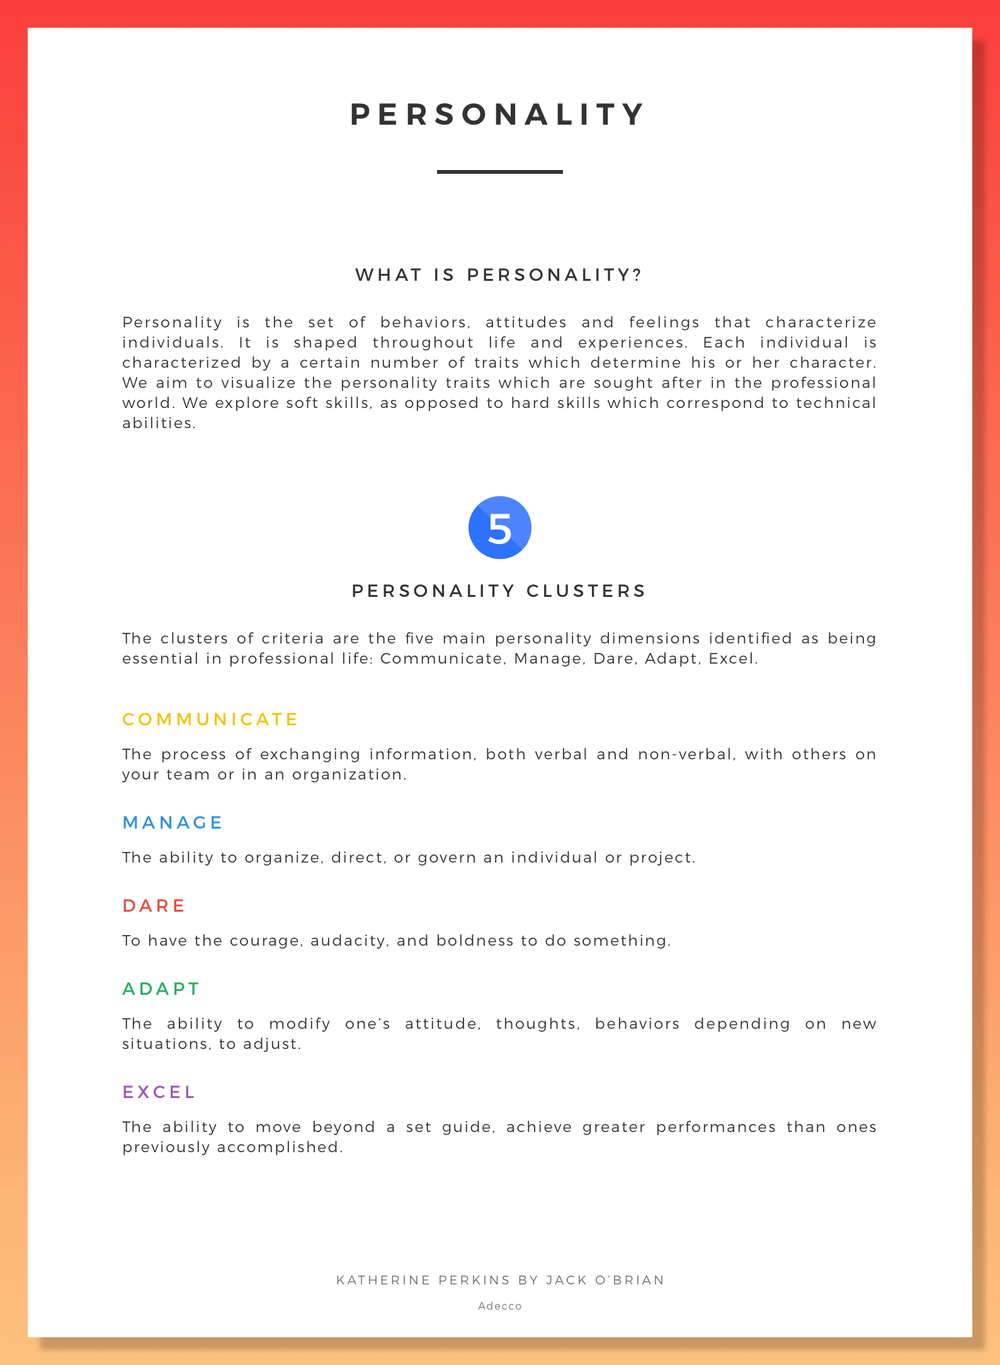 10_personality_presentation_[third]@2x.png